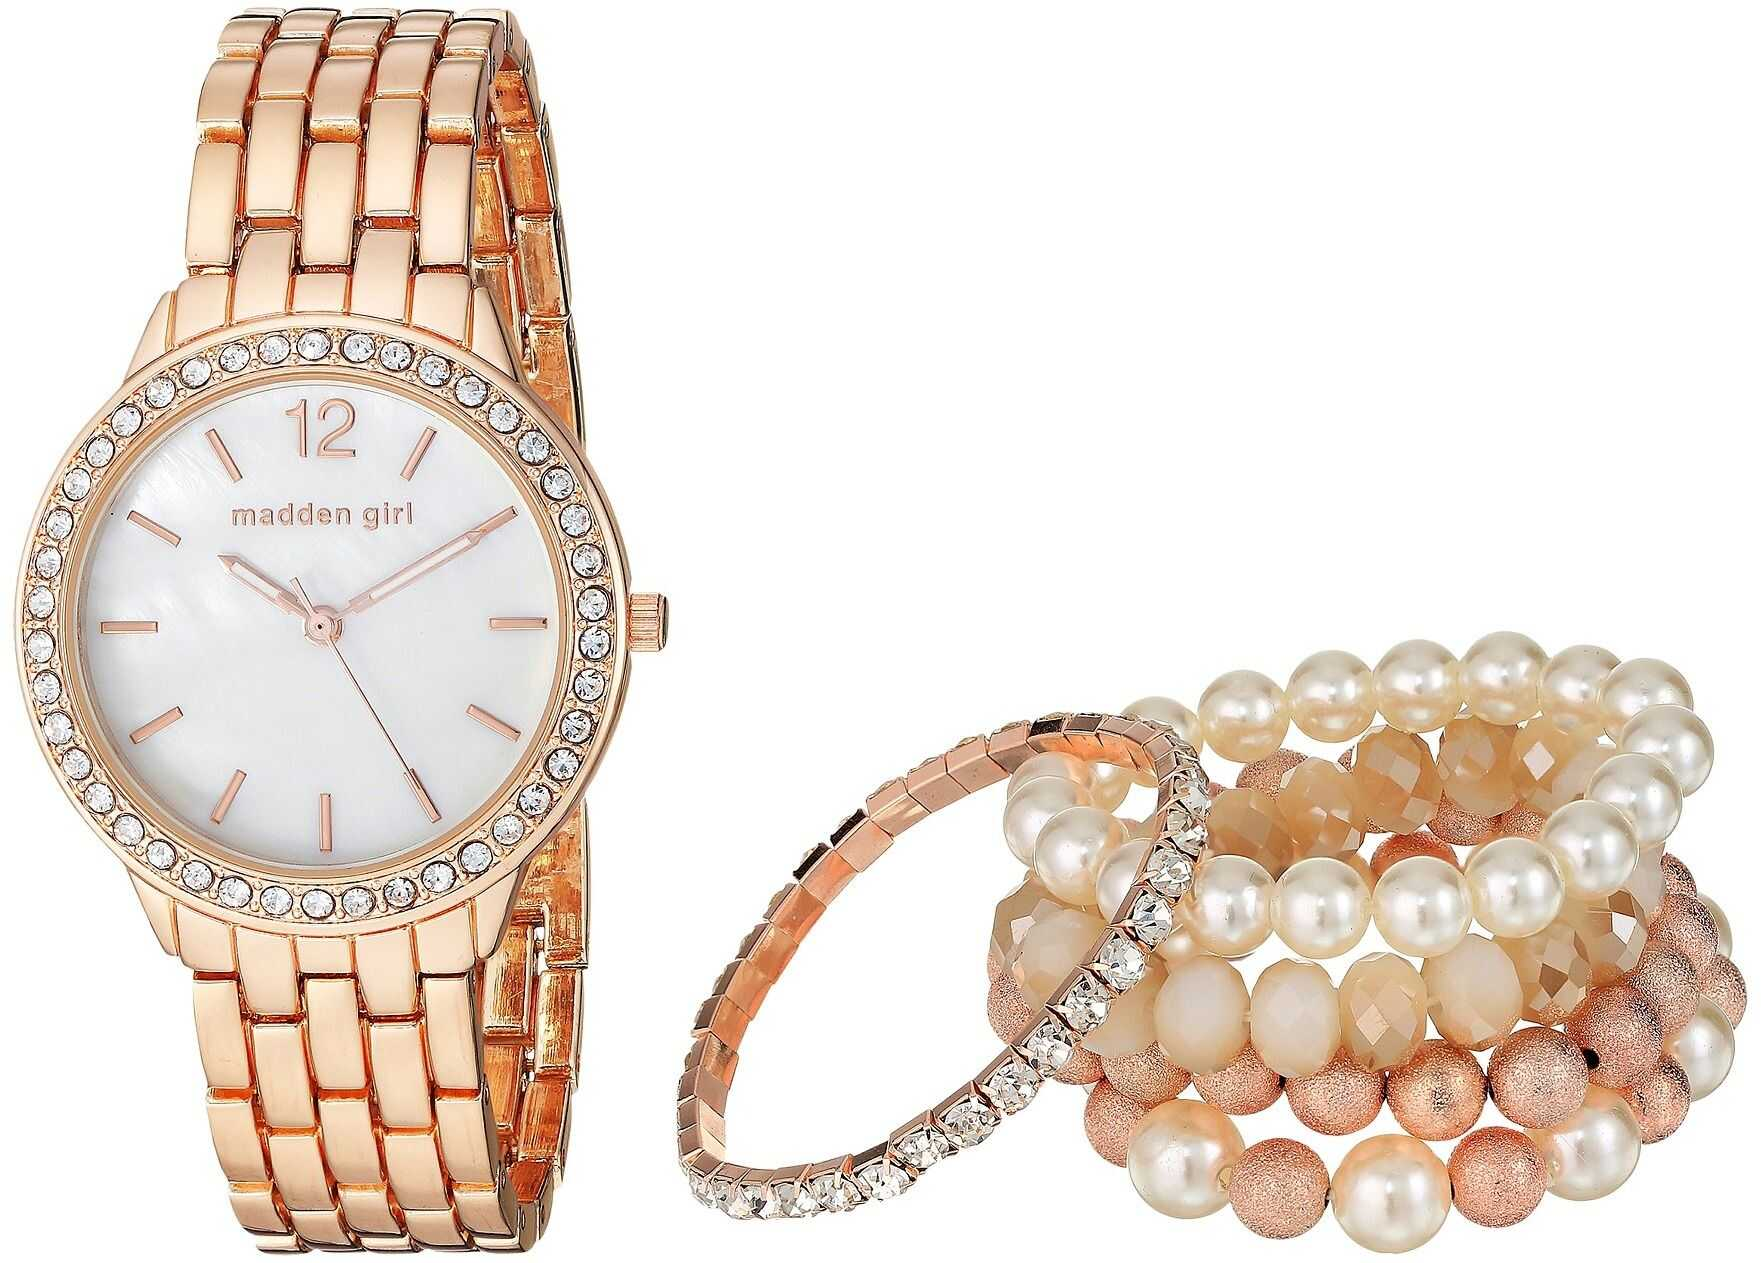 Steve Madden Madden Girl Watch with Stretch Bracelet Set SMGS018 Rose Gold